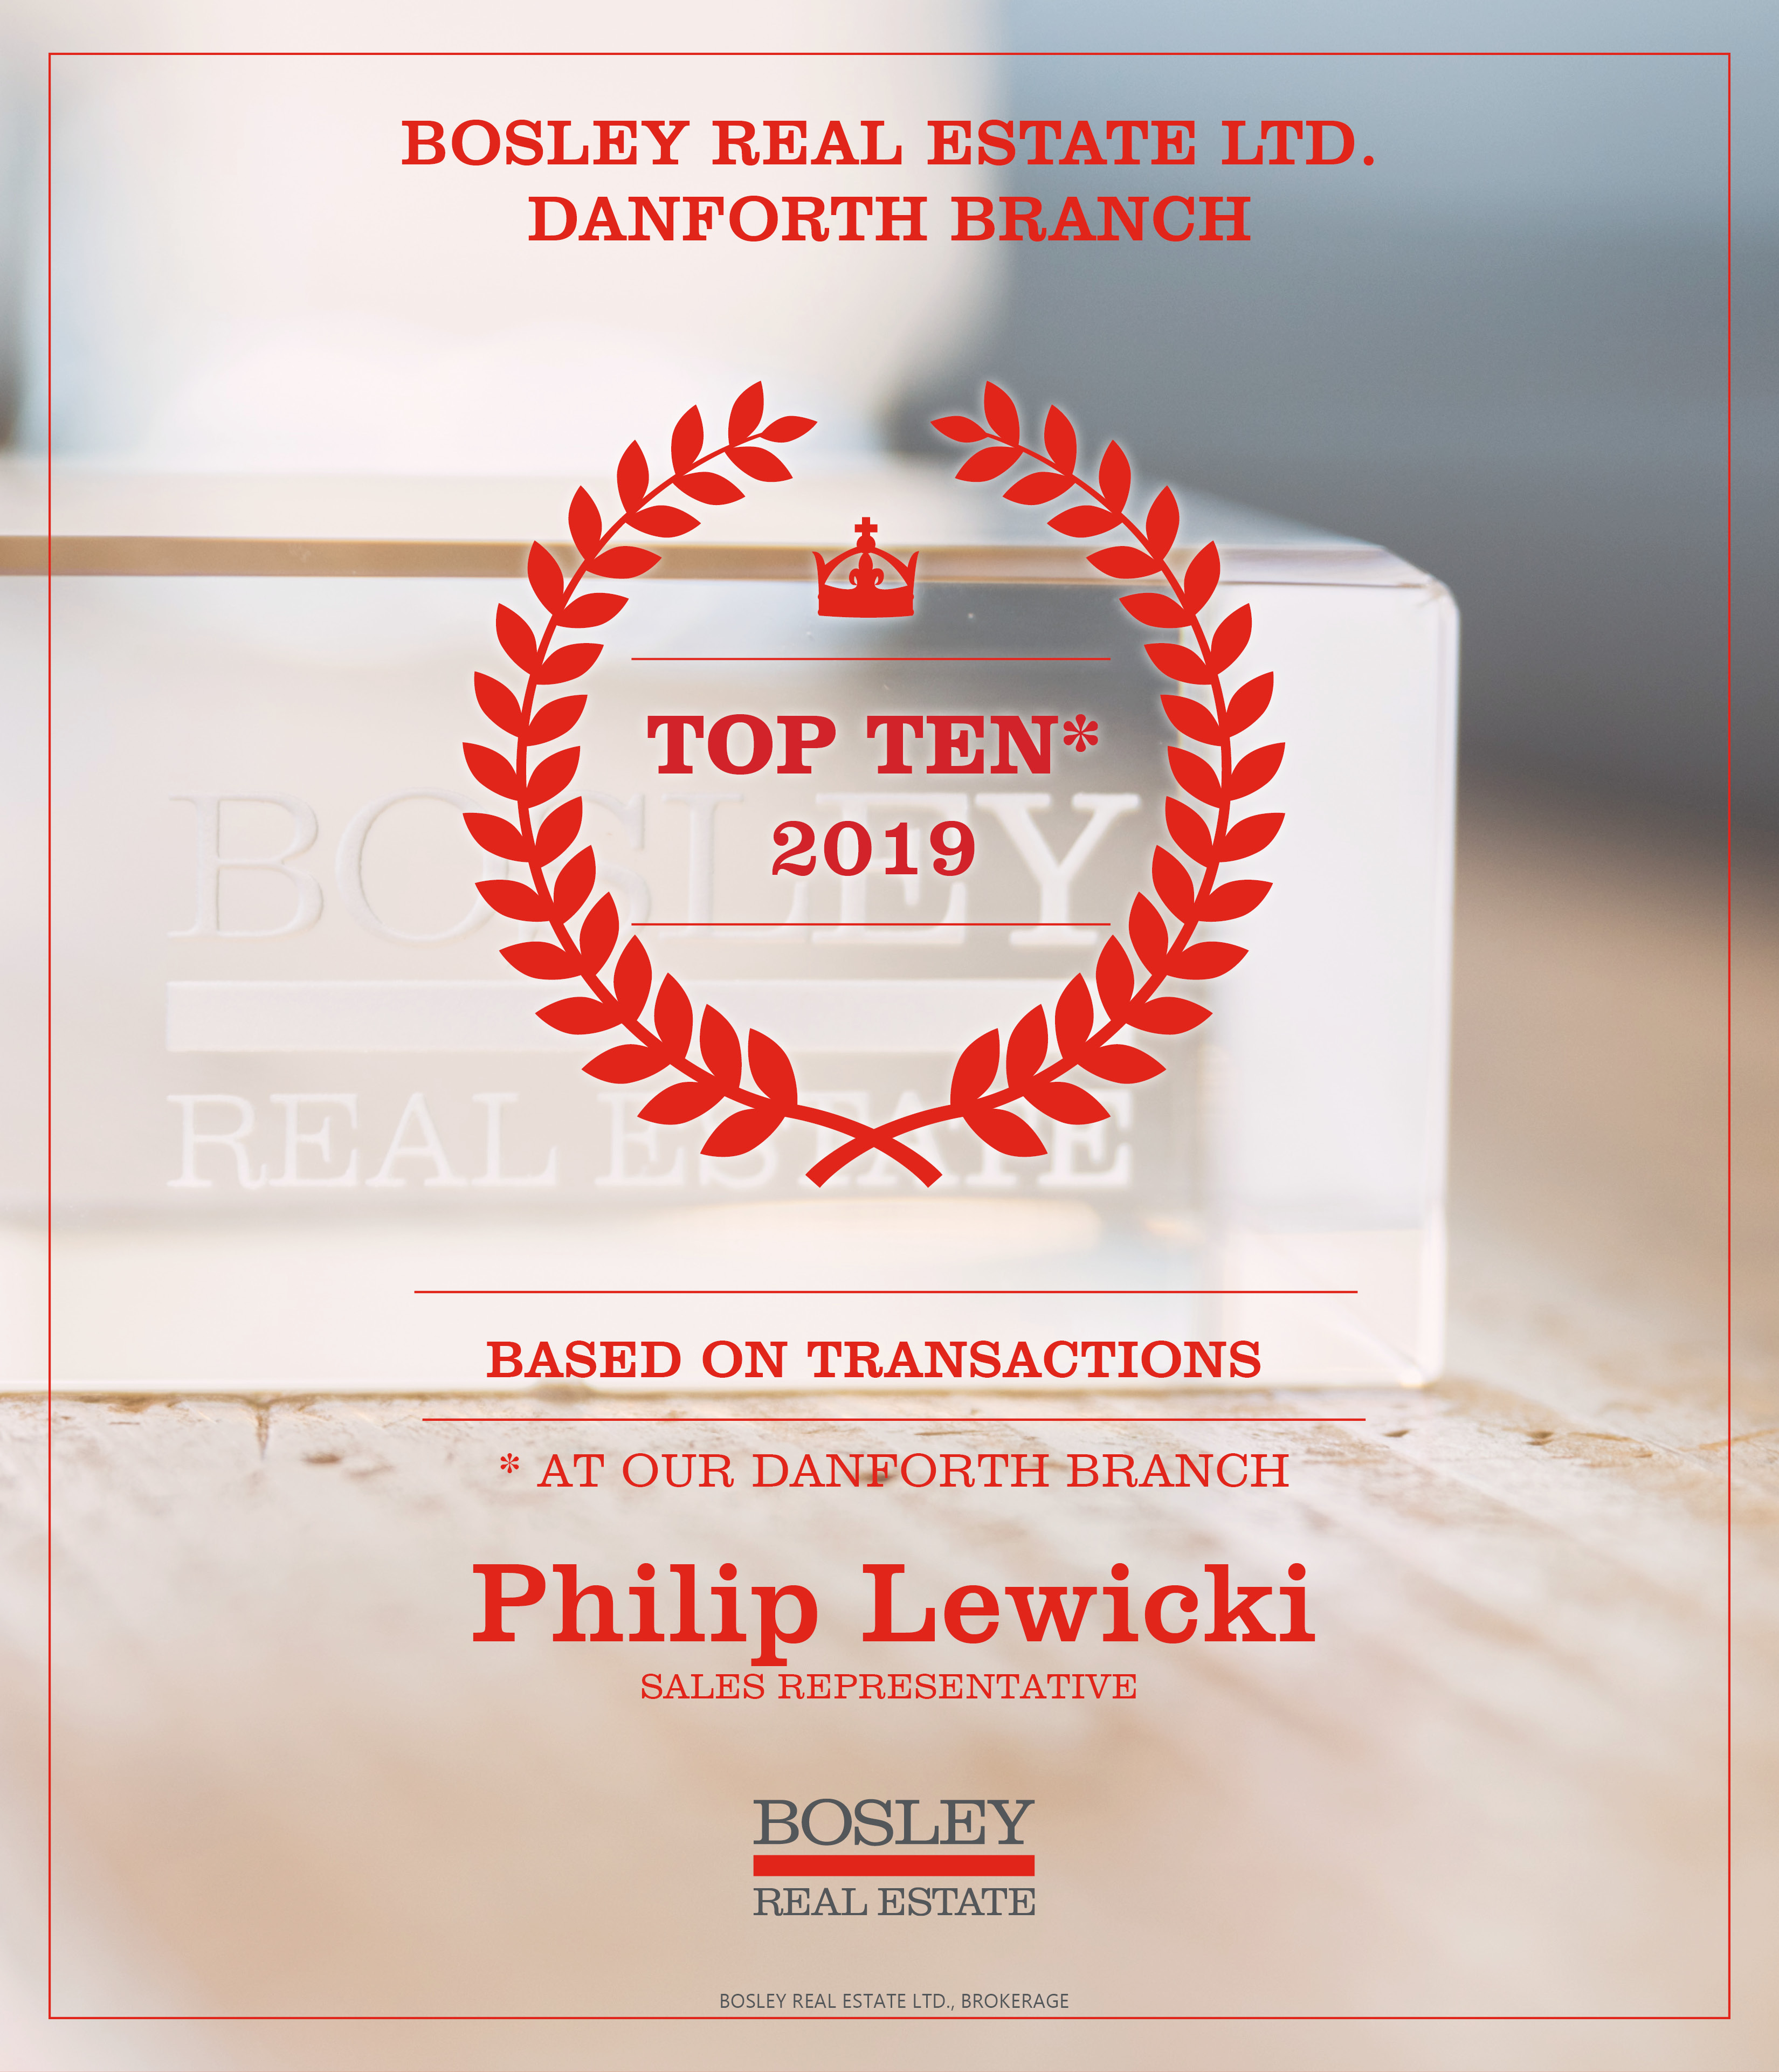 Top 10 Danforth Agents 20198.jpg